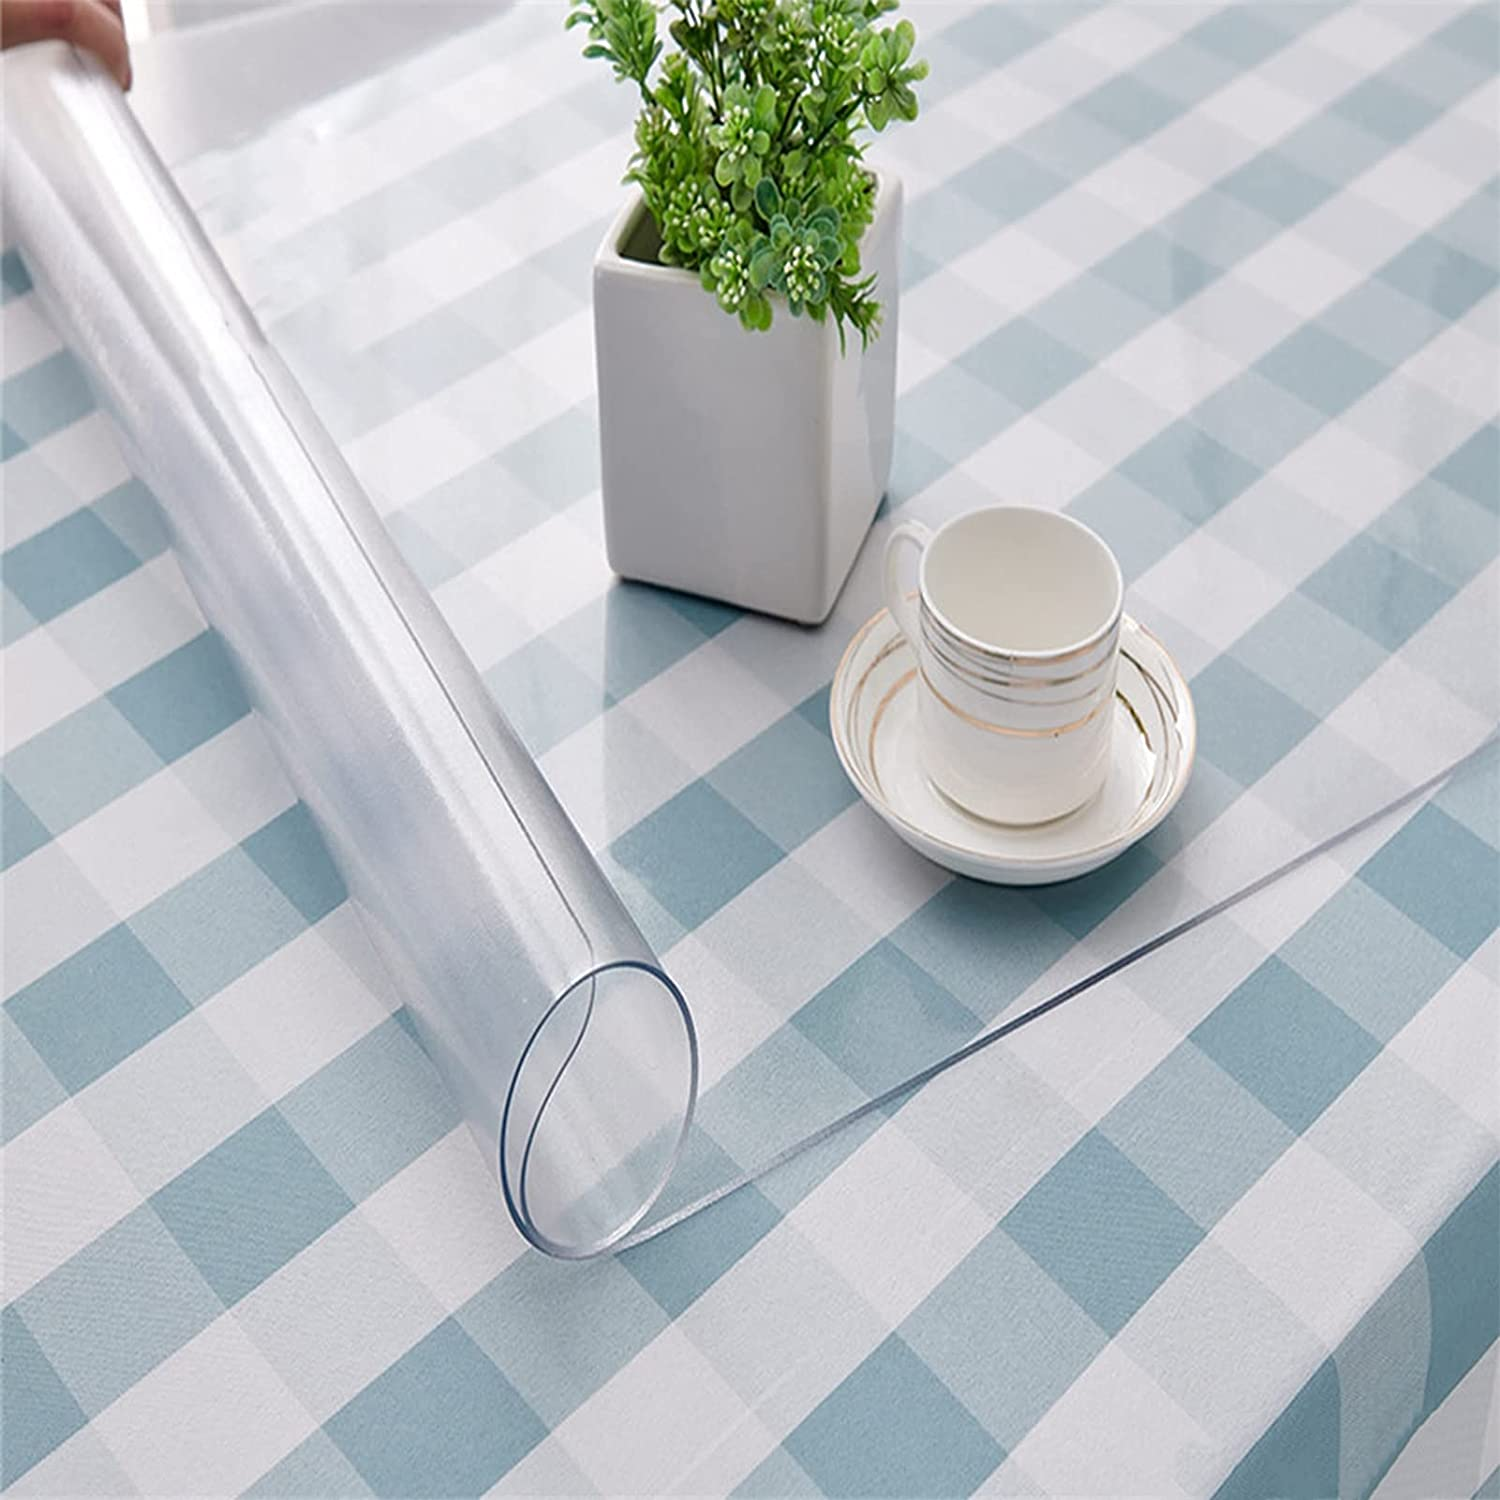 NBJT Clear Table Cover Popular products Recommendation Protector Soft 2mm Vinyl Glass PVC